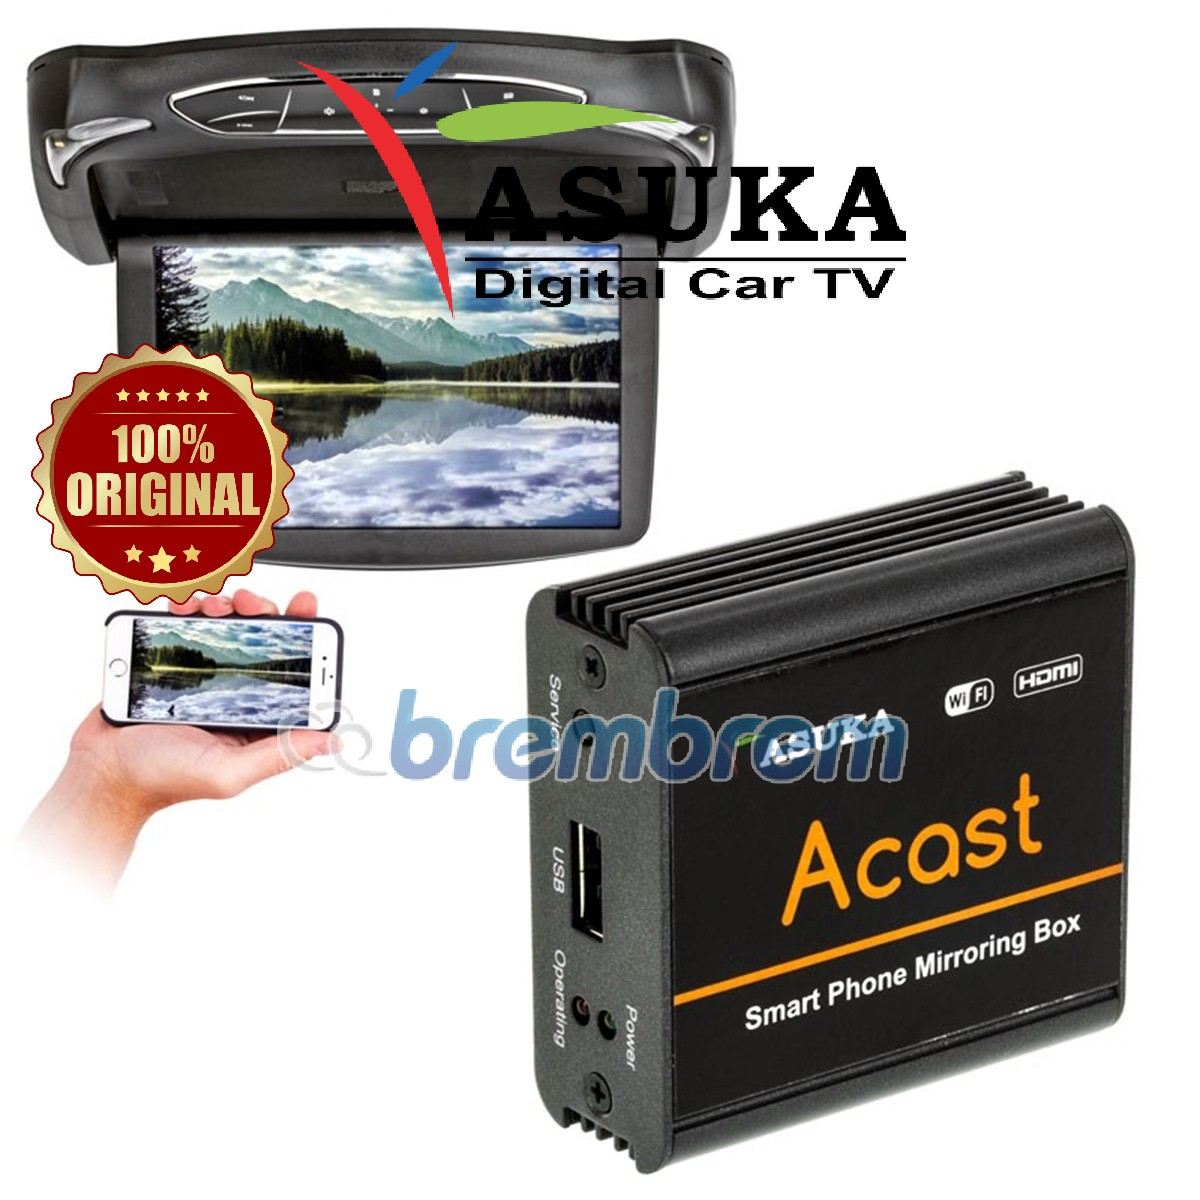 ASUKA ACAST MIRRORING BOX